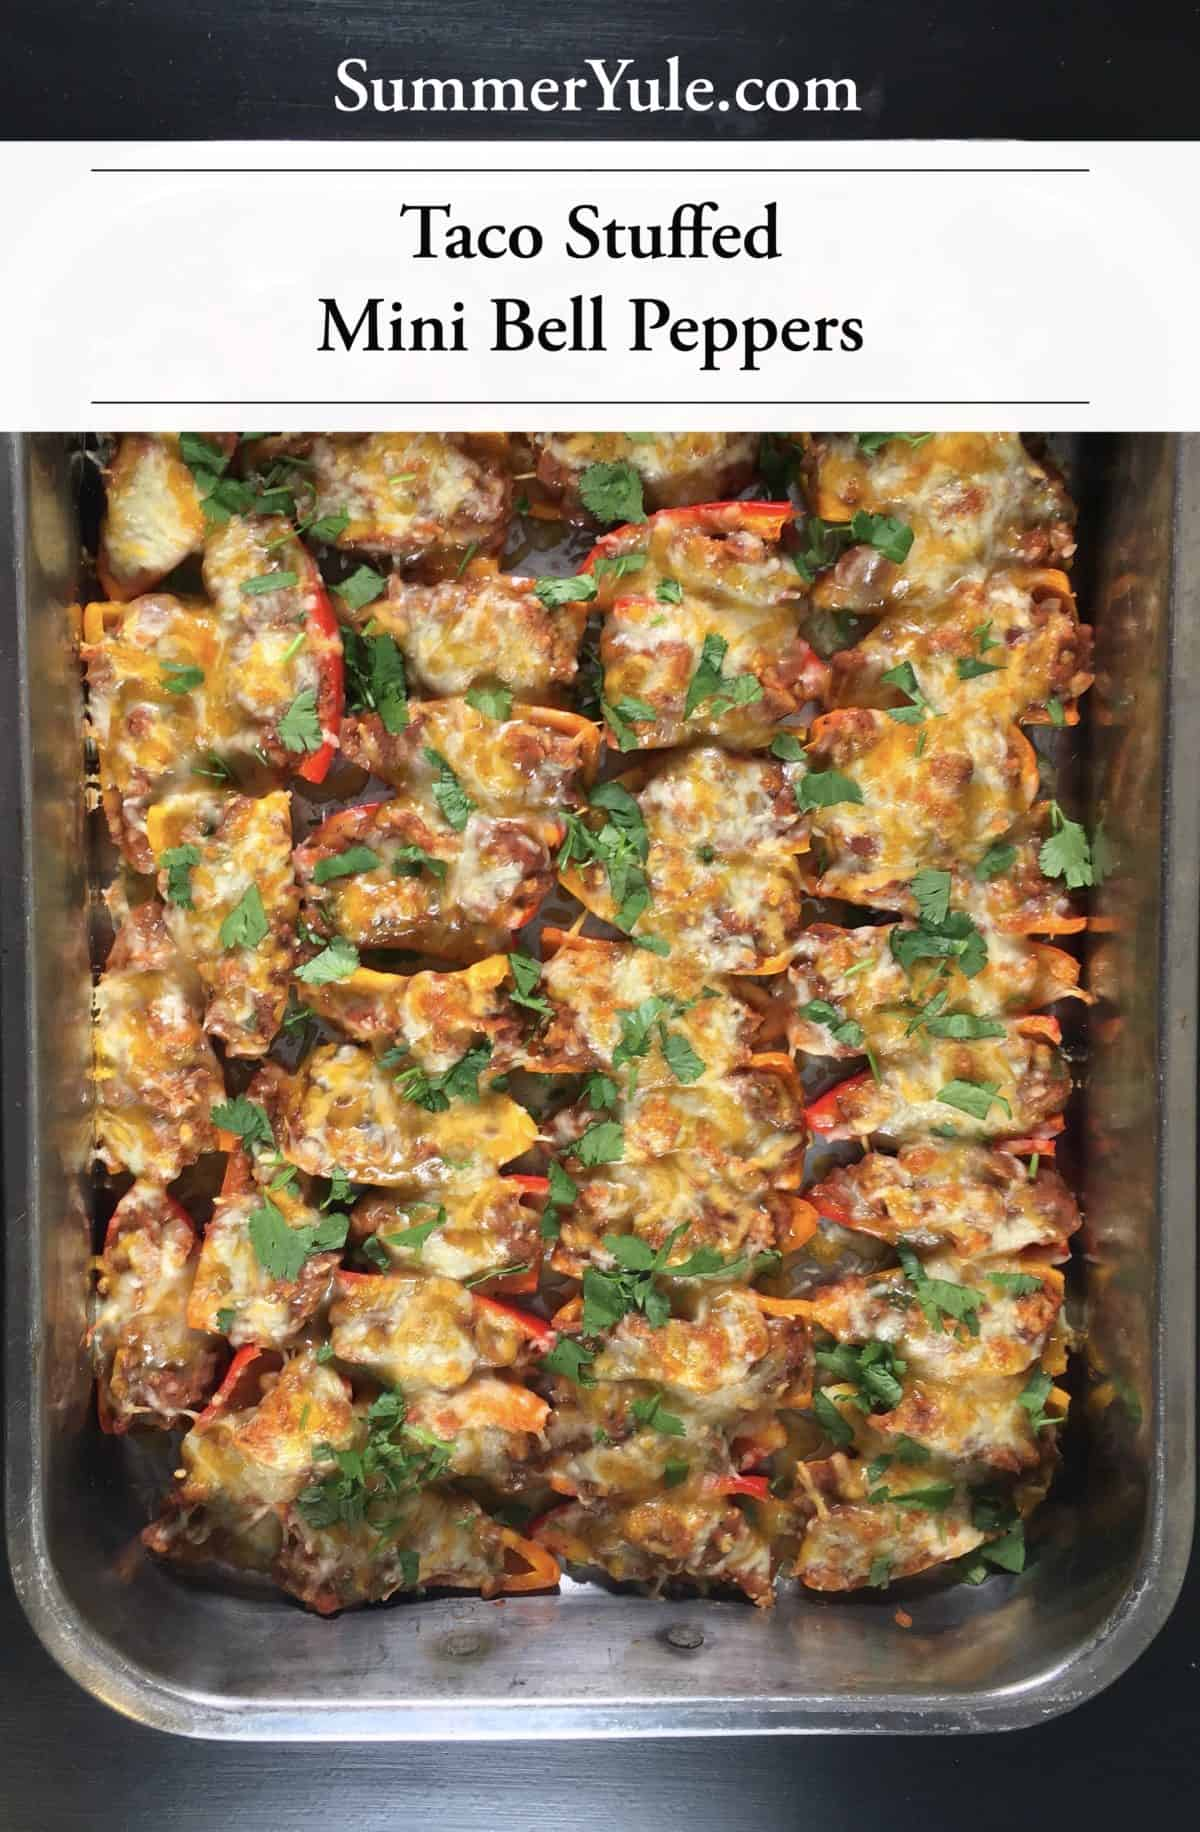 Large silver tray of Taco-Stuffed Mini Bell Peppers after baking